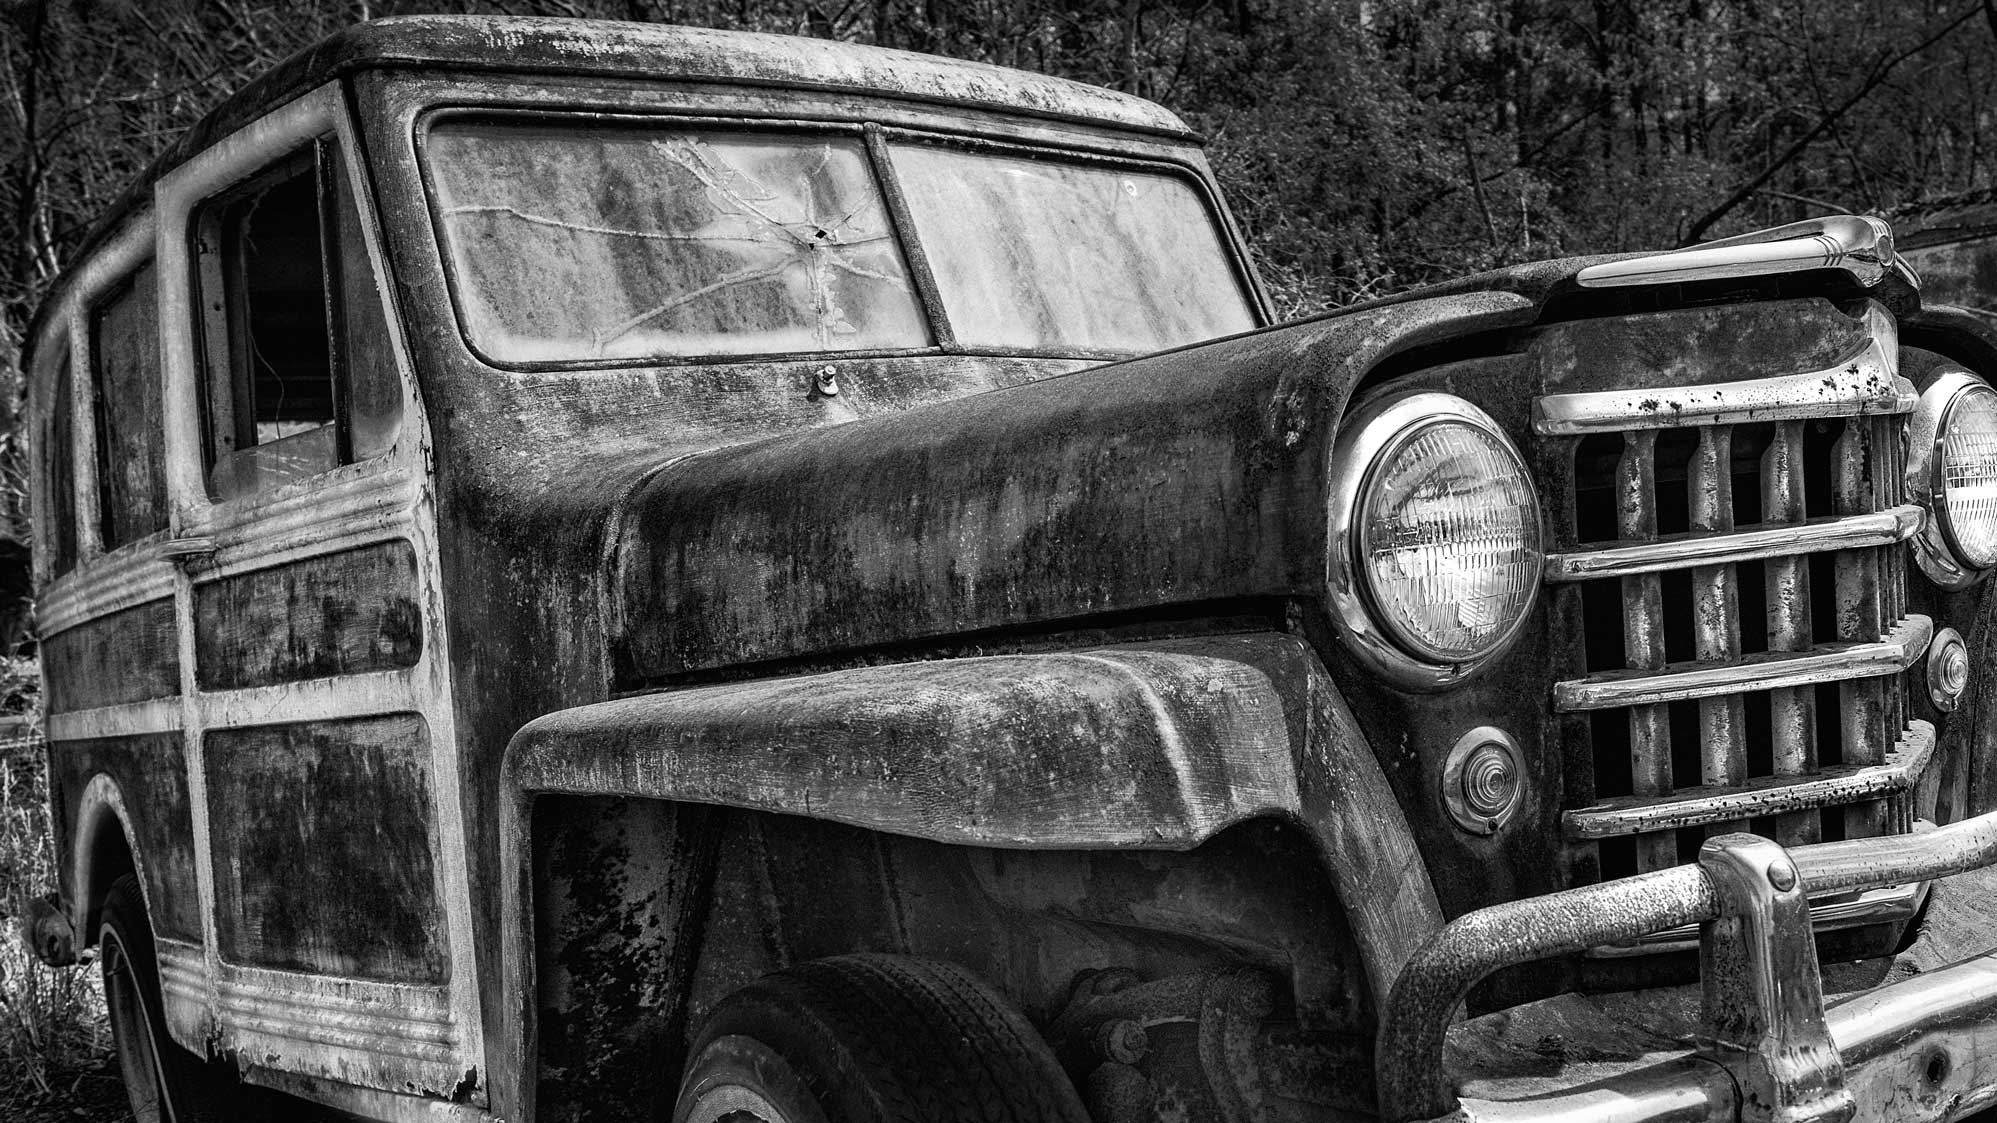 Check out all the killer detail and texture on the peeling paint and rust on this car! I can't wait to print this image on some monster paper and see the detail come to life! Can you ID the car?